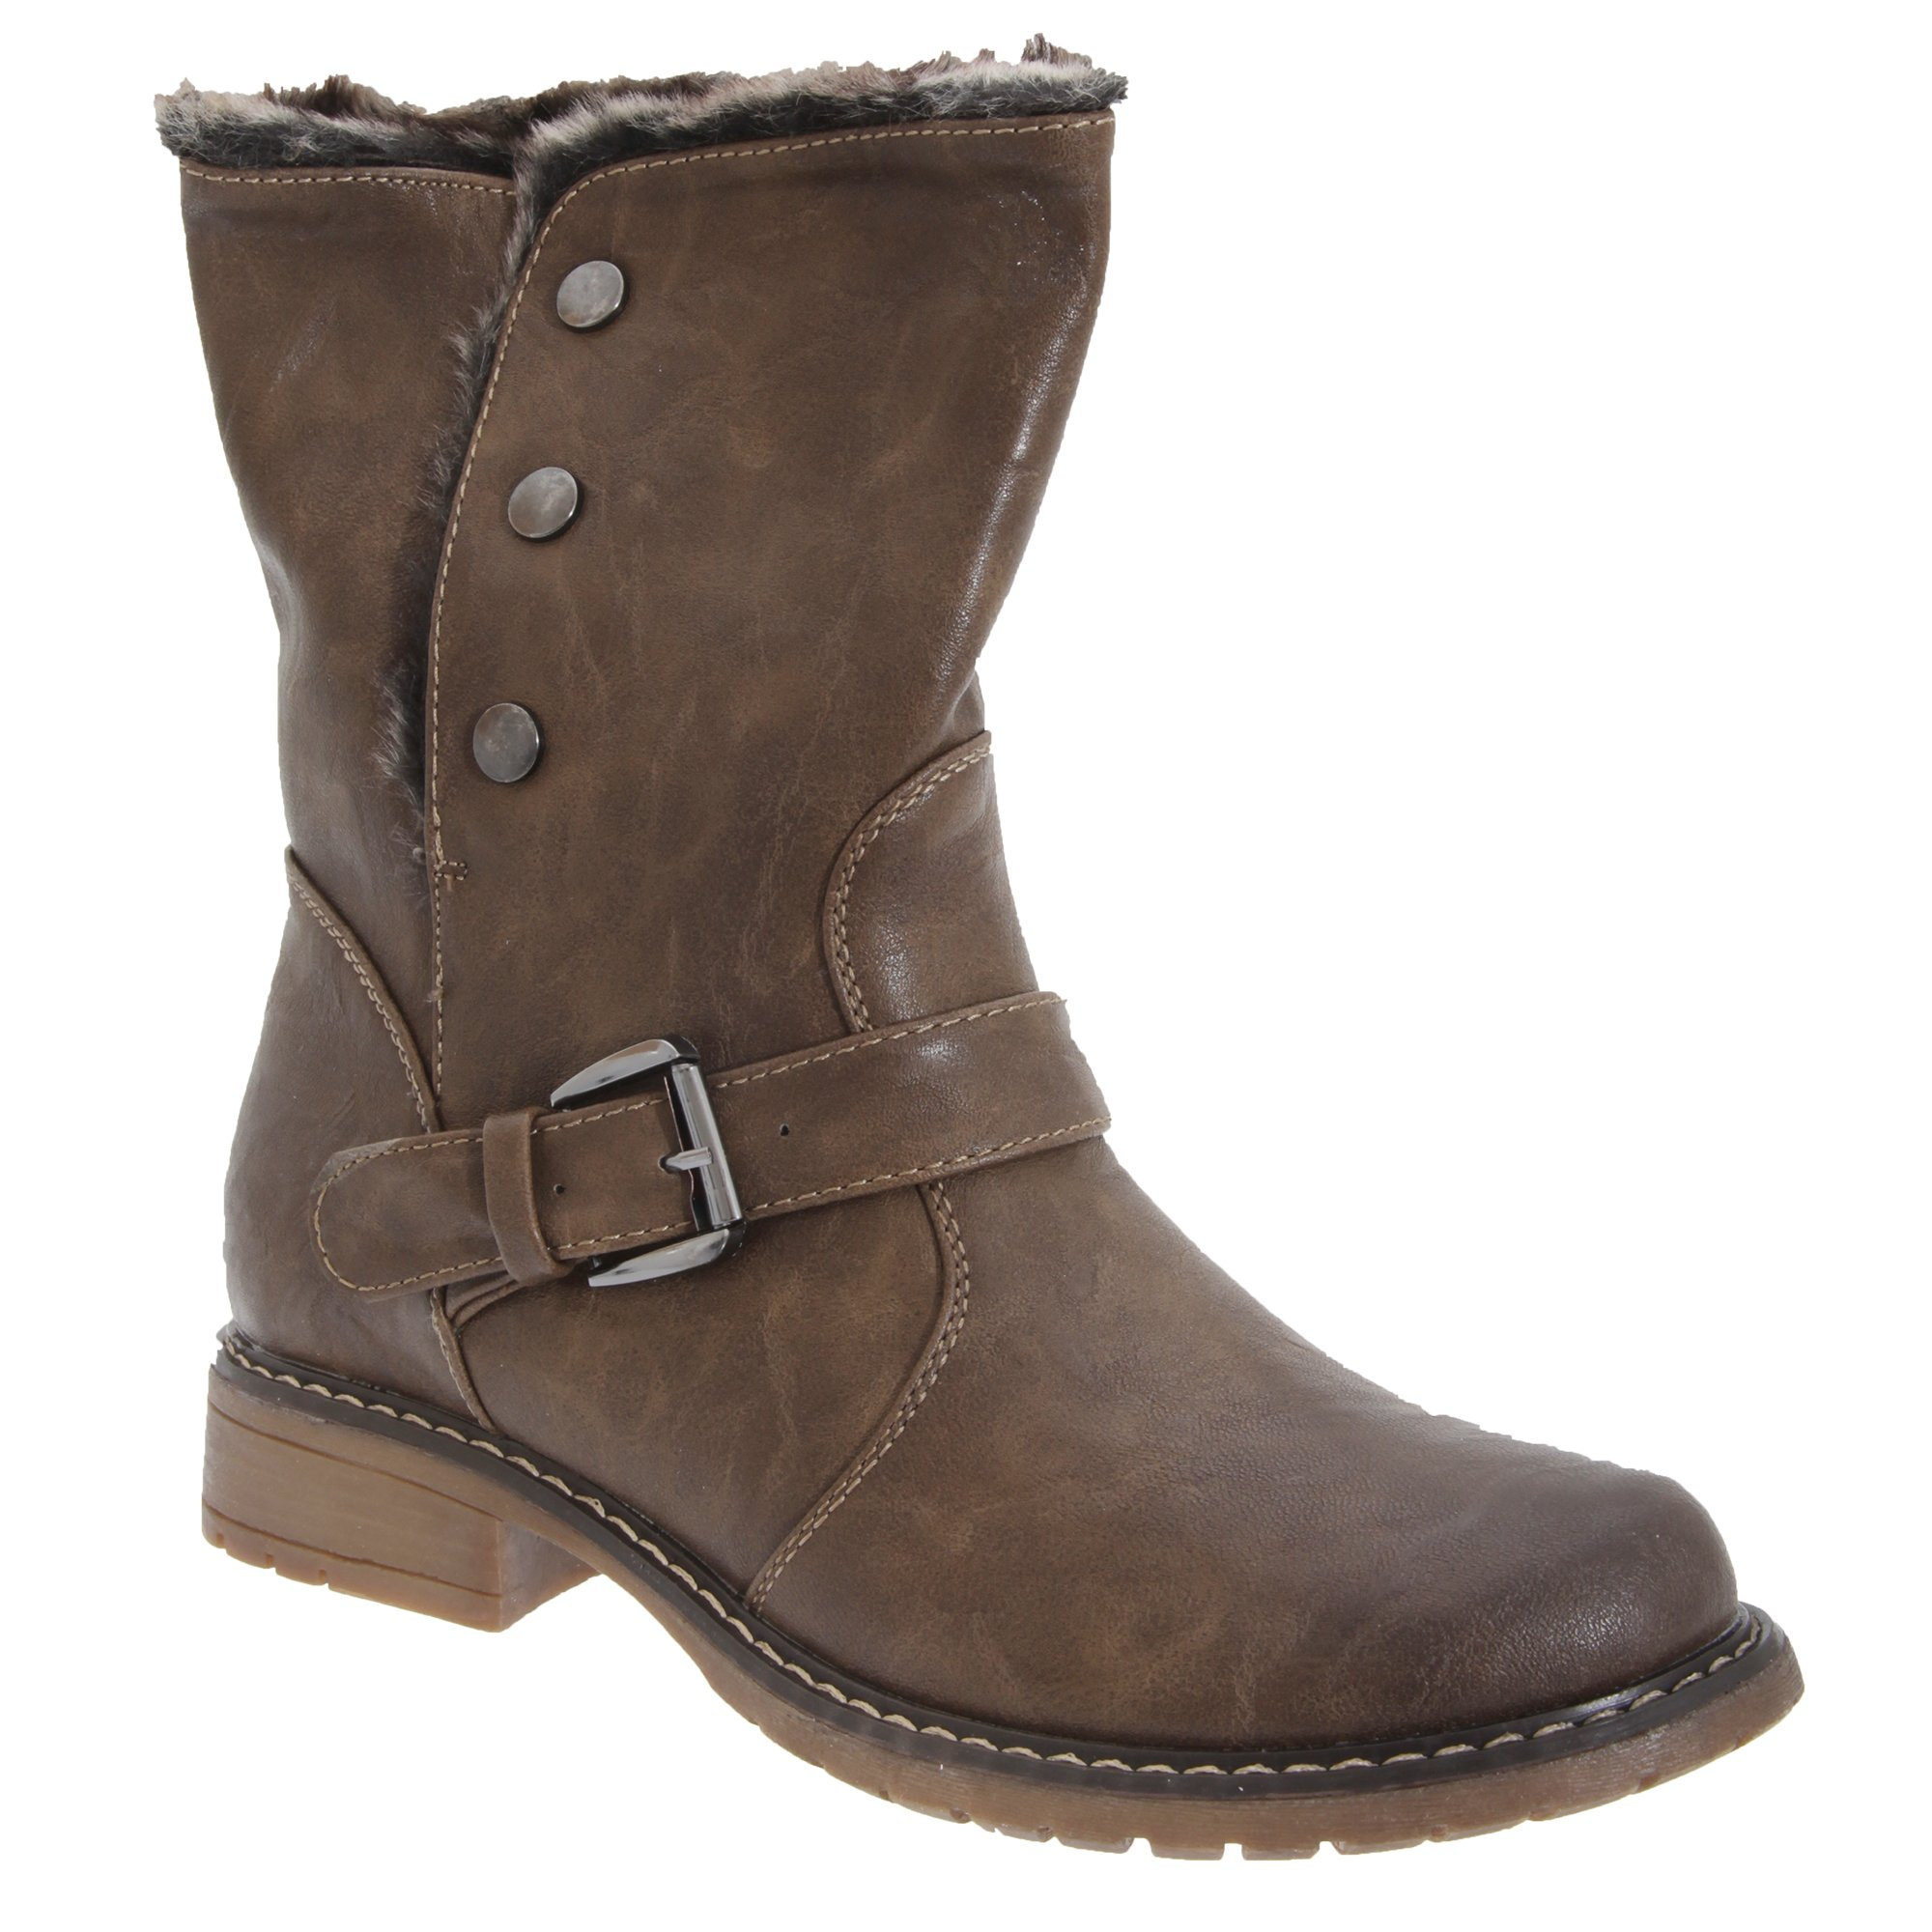 Cats Eyes Womens/Ladies Fold Down Biker Style Ankle Boots (10 US) (Brown)